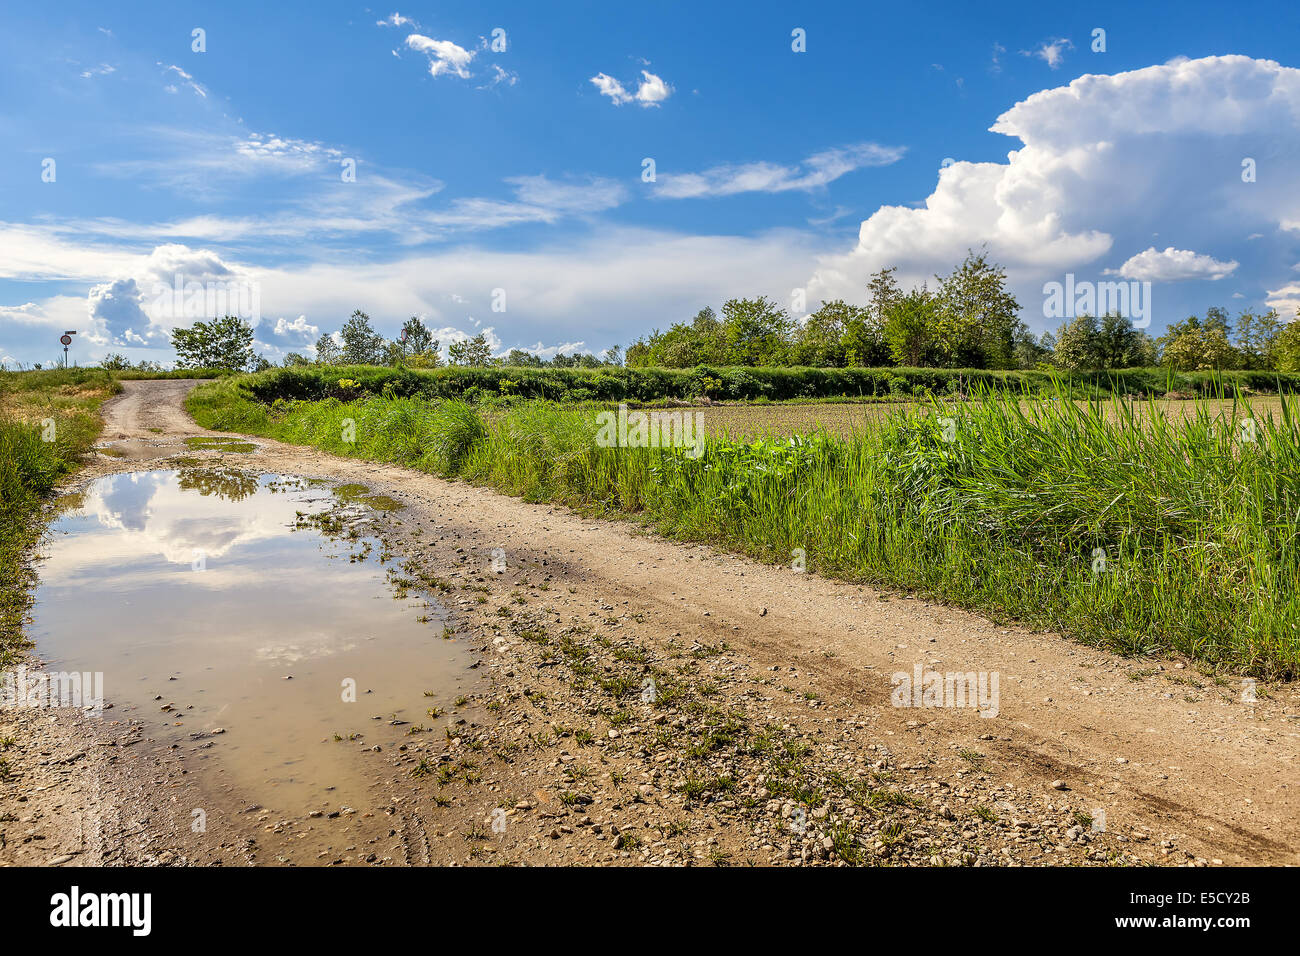 Puddle on rural road under beautiful blue sky with white clouds in Piedmont, Northern Italy. - Stock Image